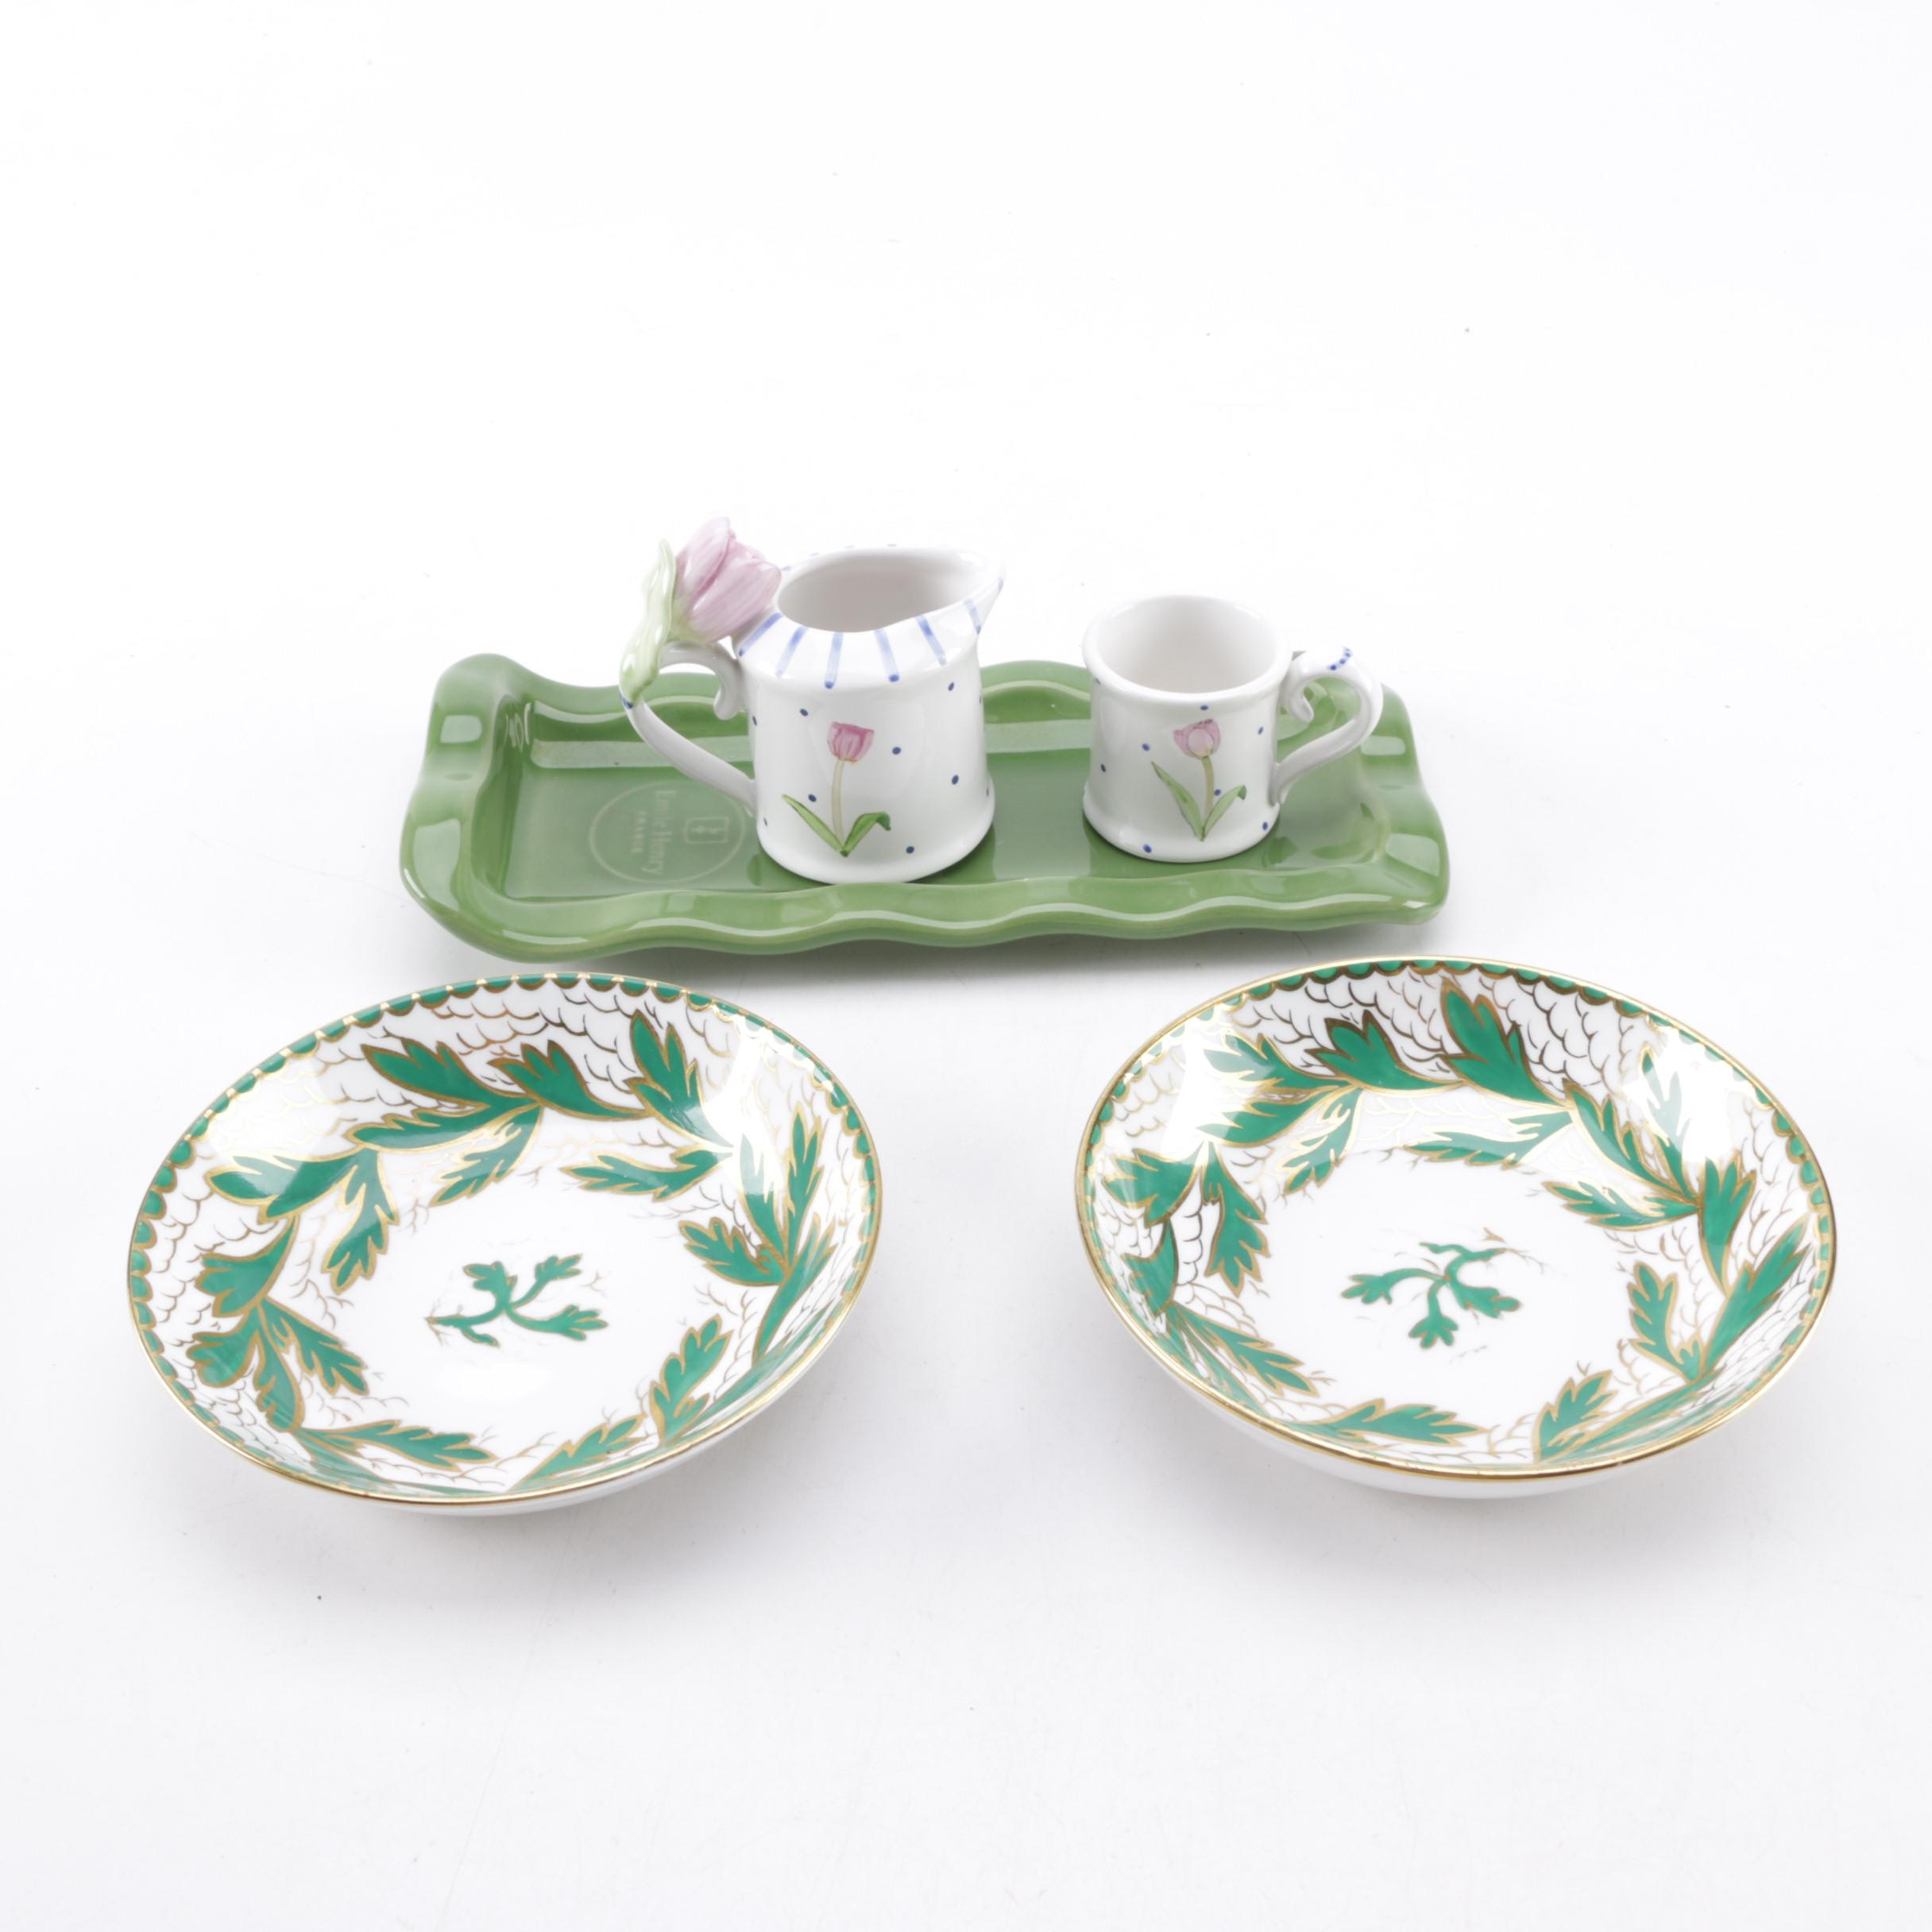 Ceramic and Porcelain Serveware Including Emile Henry